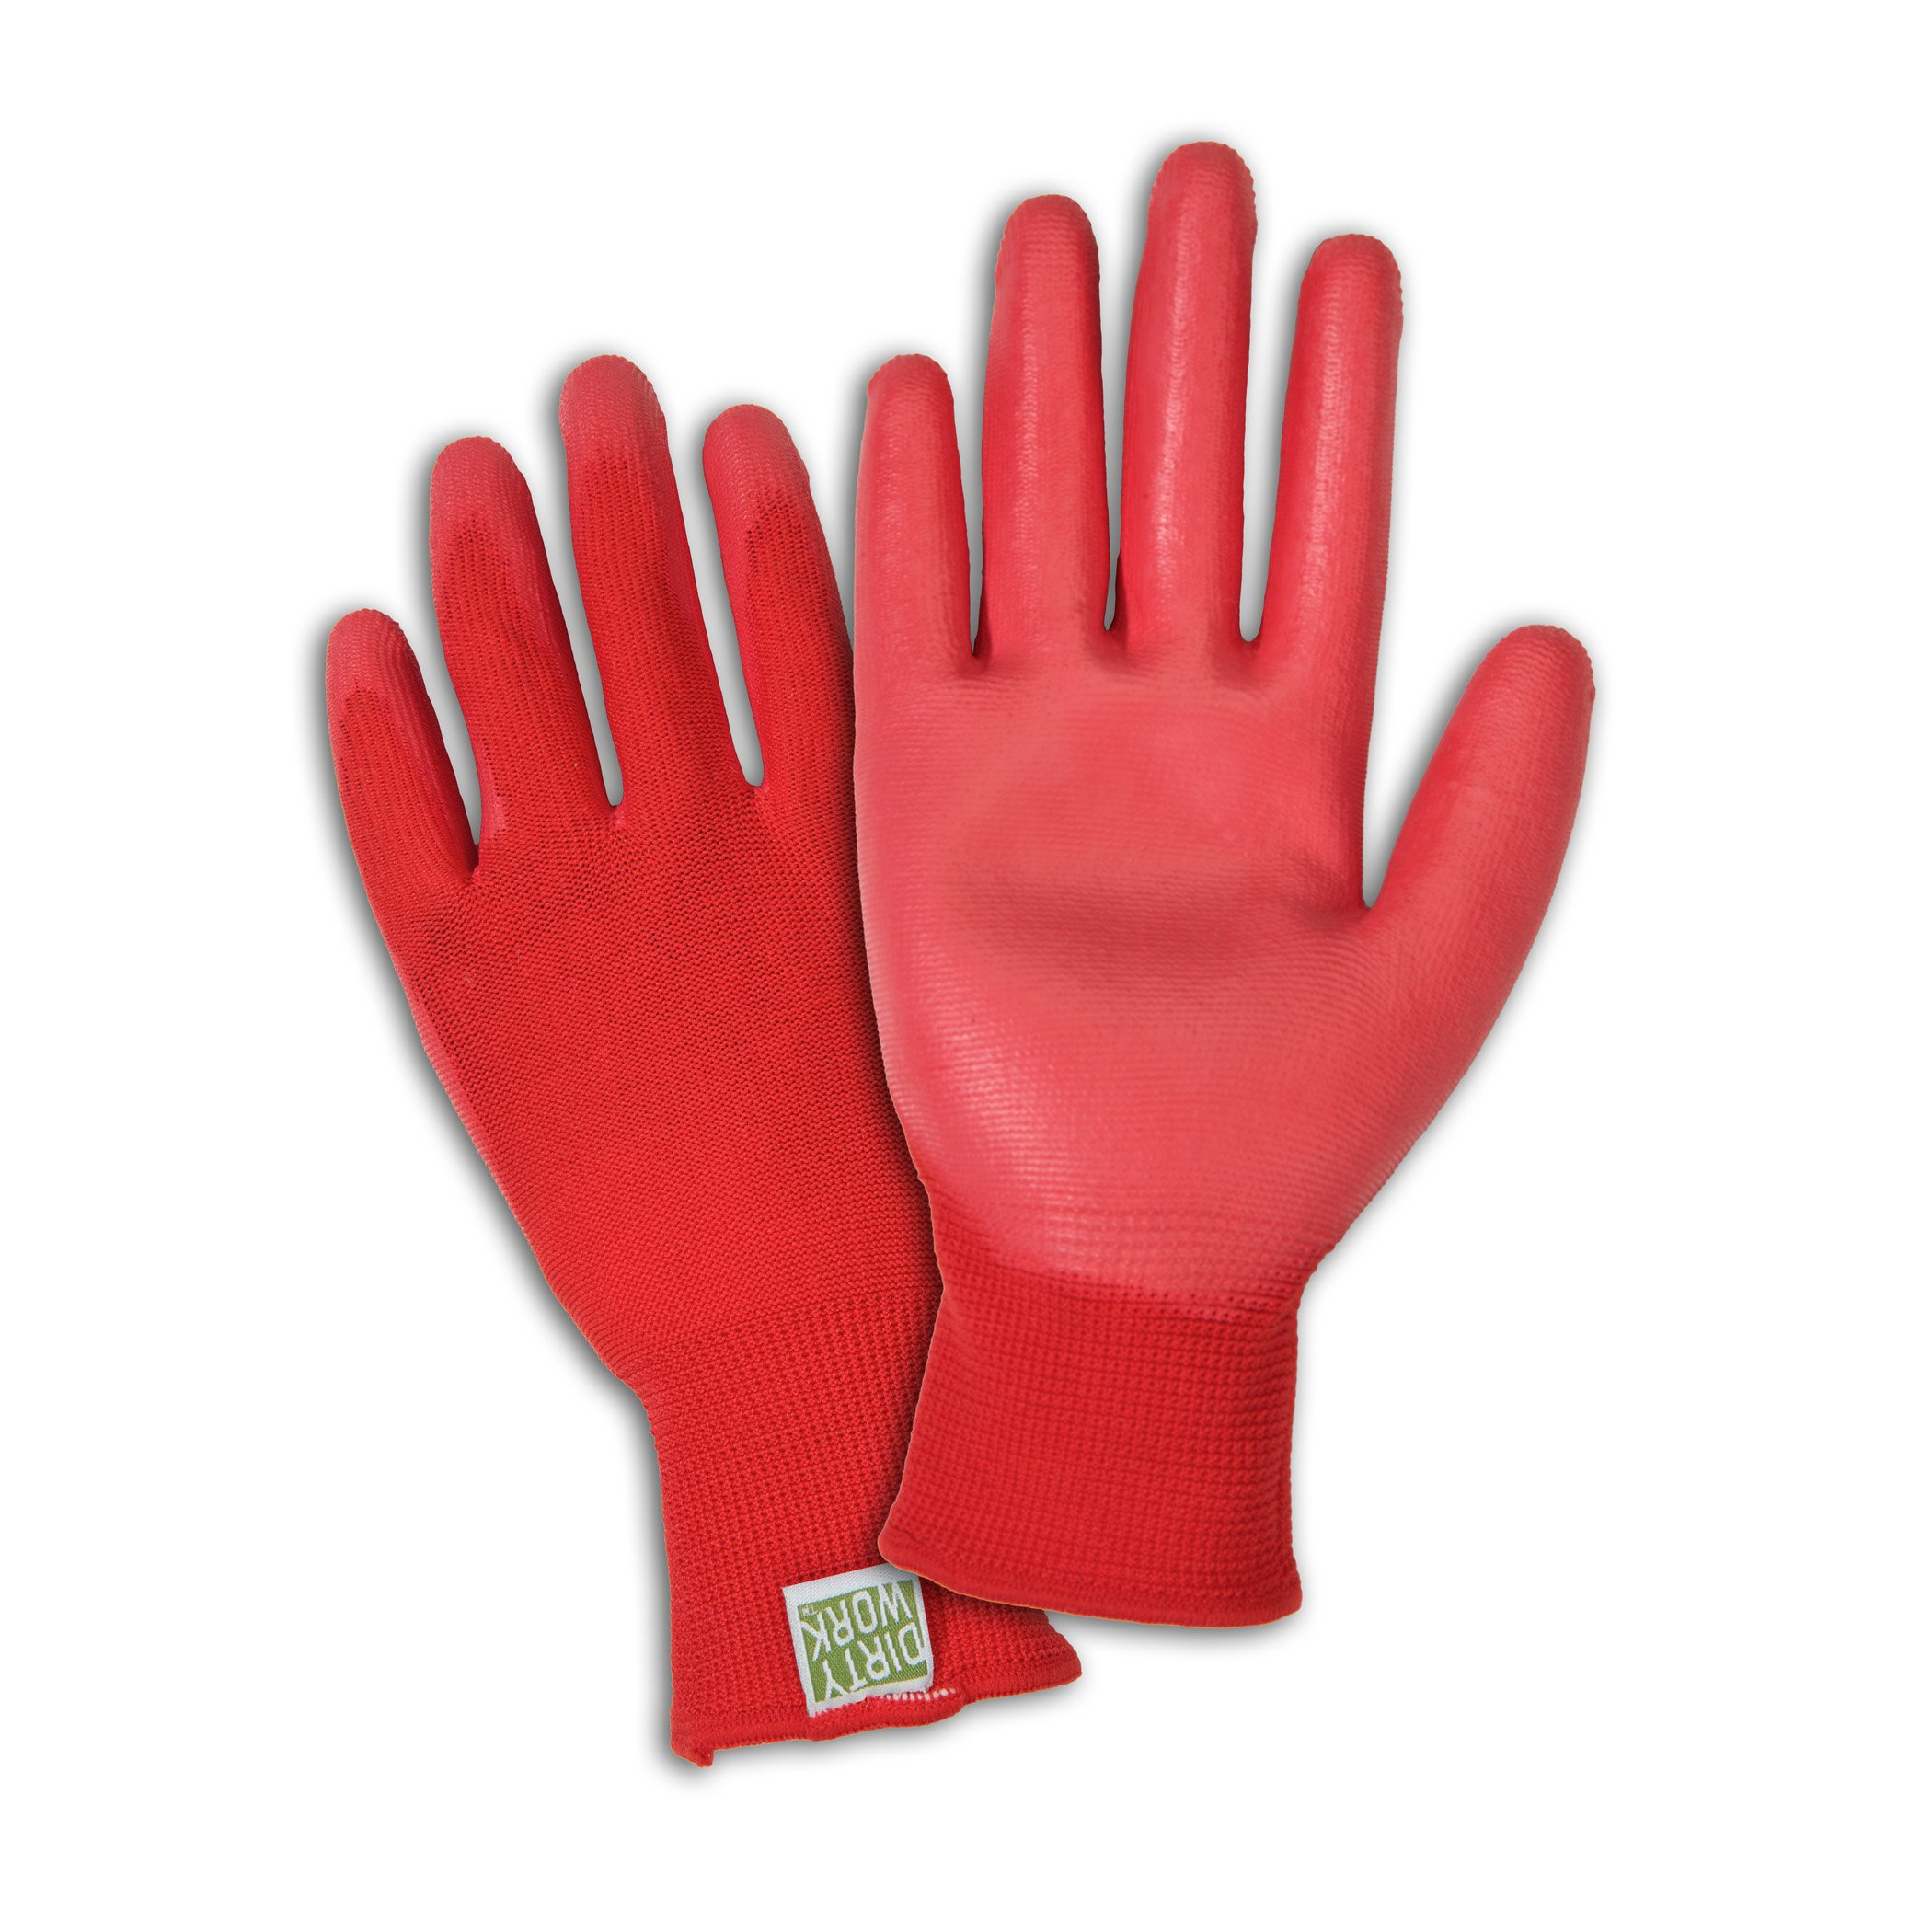 DIRTY WORK DW37165 Stretch Knit Gardening Gloves with Polyurethane Coated Palm: Women's Large, 1 Pair